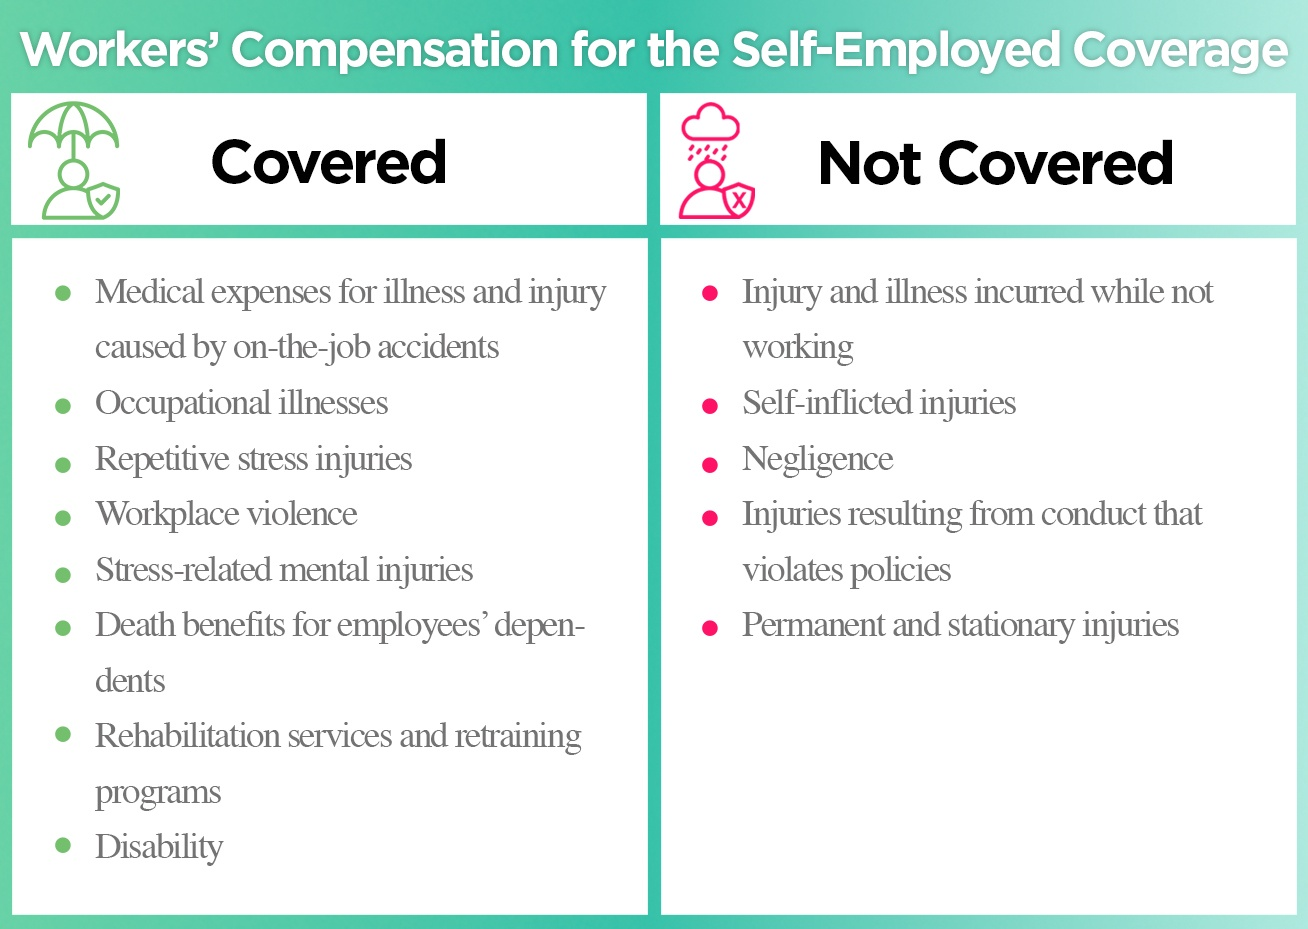 how much does malpractice insurance cost for social workers